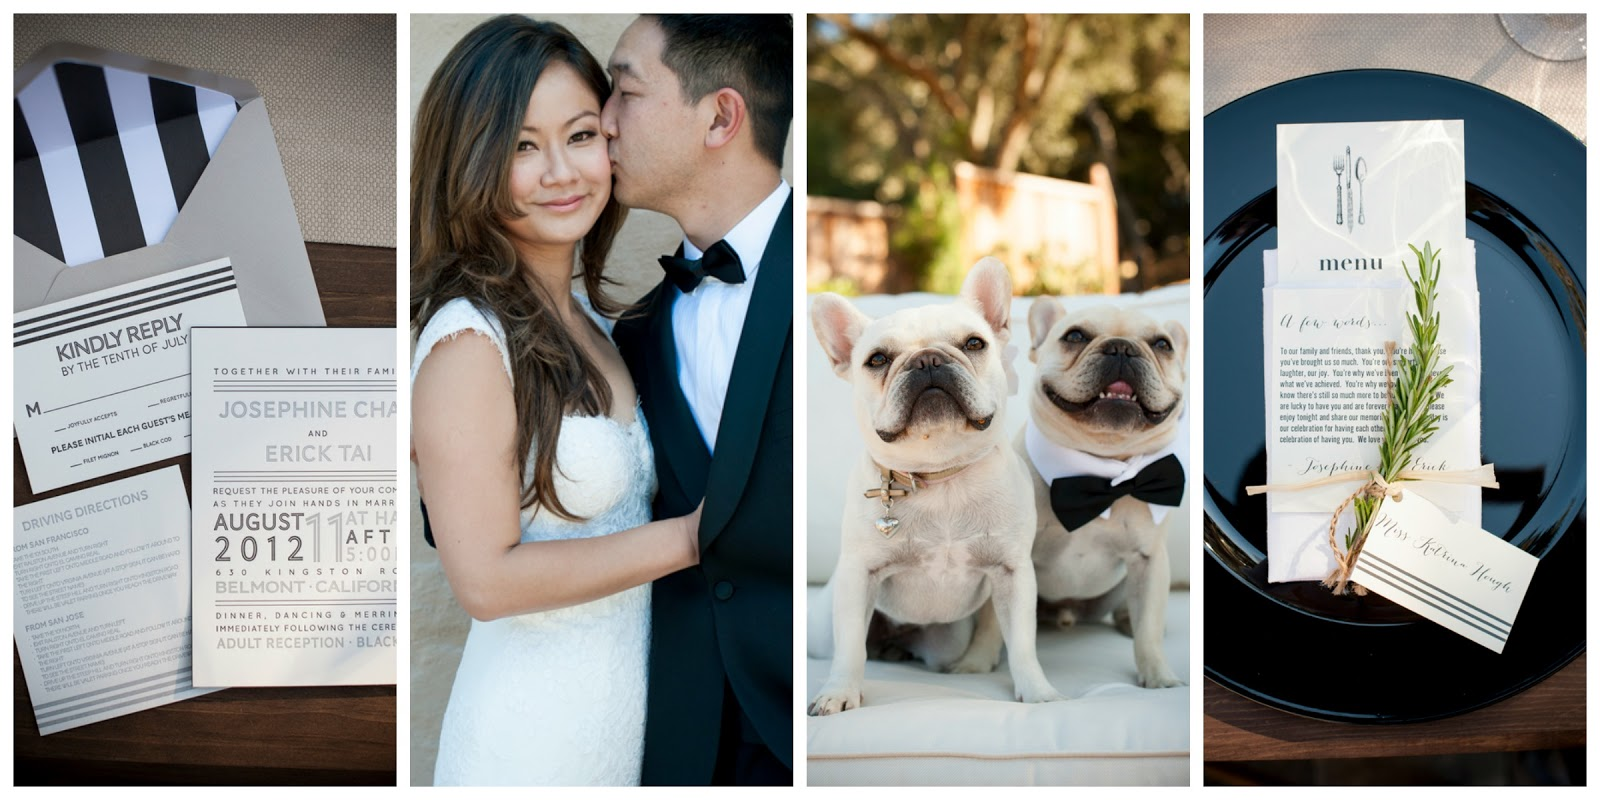 real weddings, california backyard wedding, elegant backyard wedding ideas, outdoor chandelier wedding decor, french bulldog ring bearer